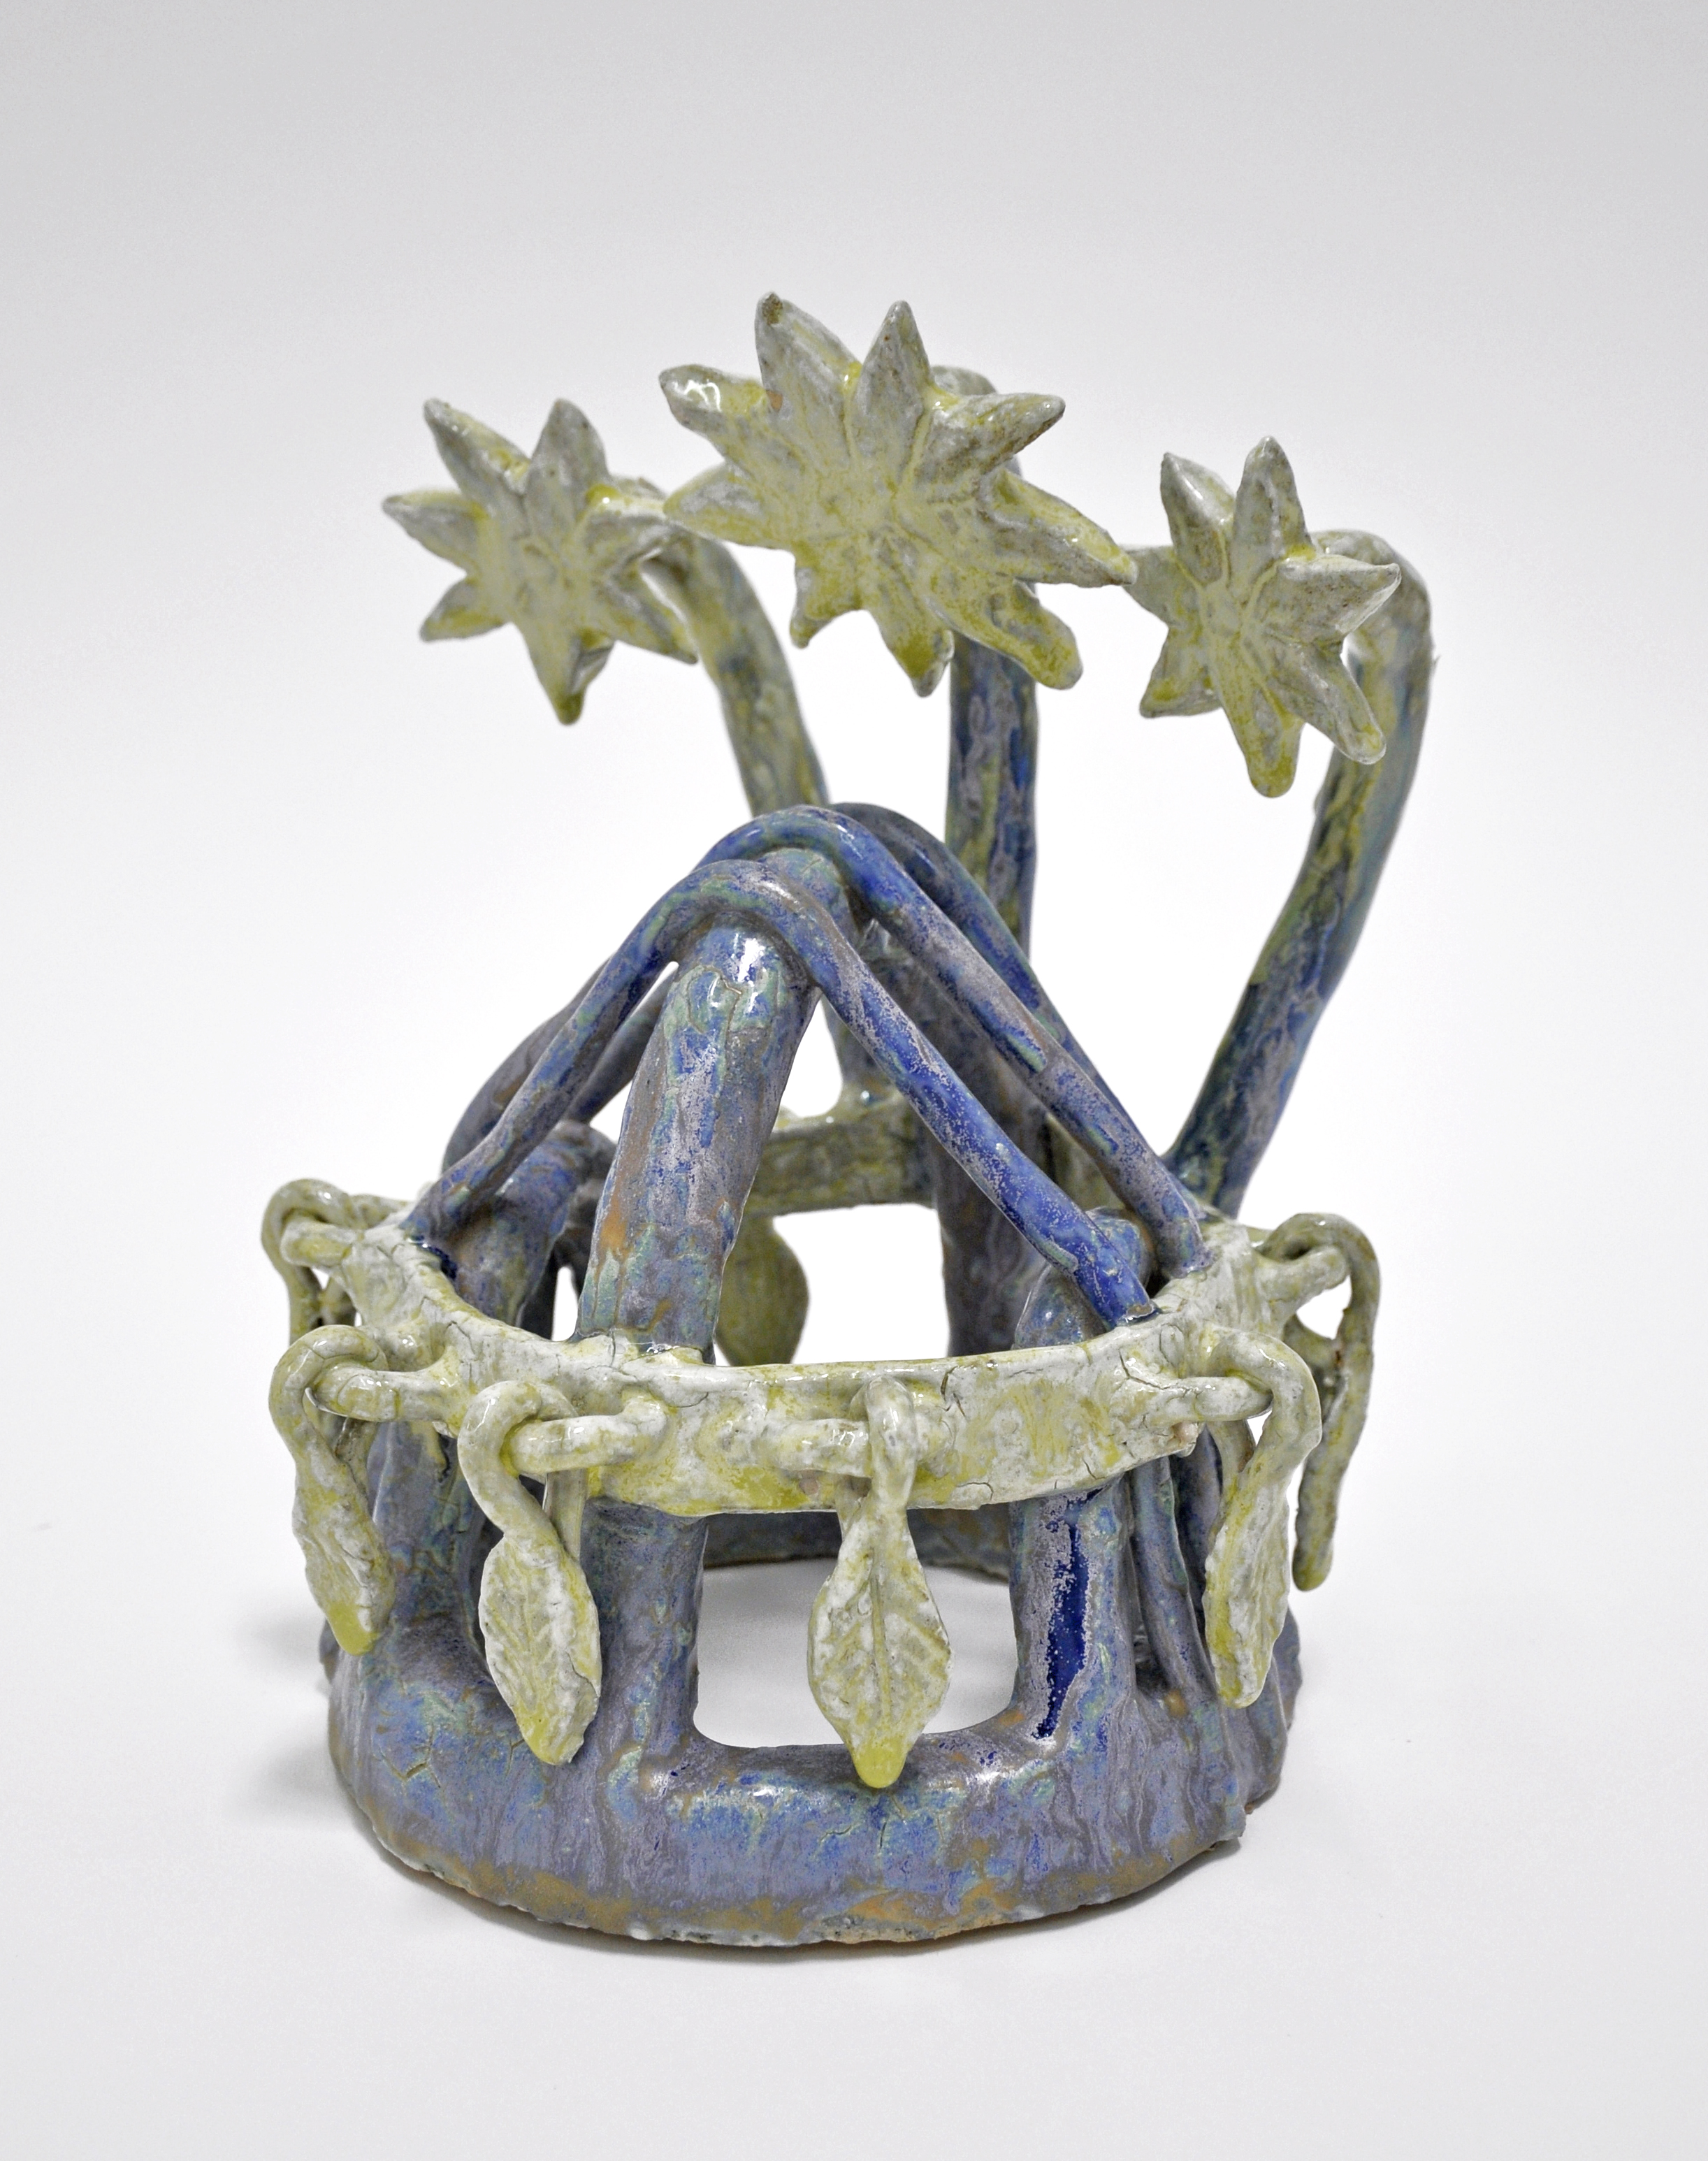 "Maryam Yousif, ""Flower Crown"", glazed stoneware and porcelain, 7.5 x 7.5 x 10.5 in, 2019"